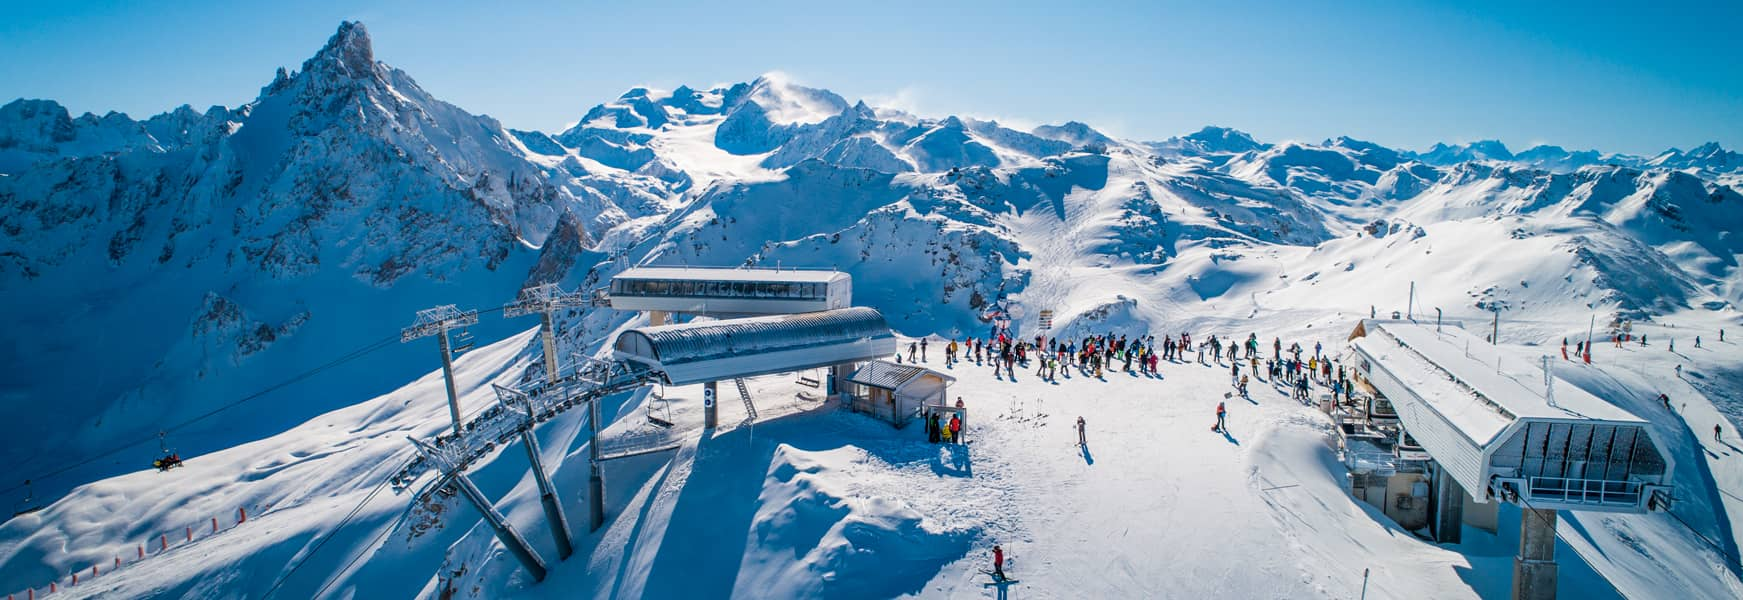 Location Ski Intersport Courchevel 1650